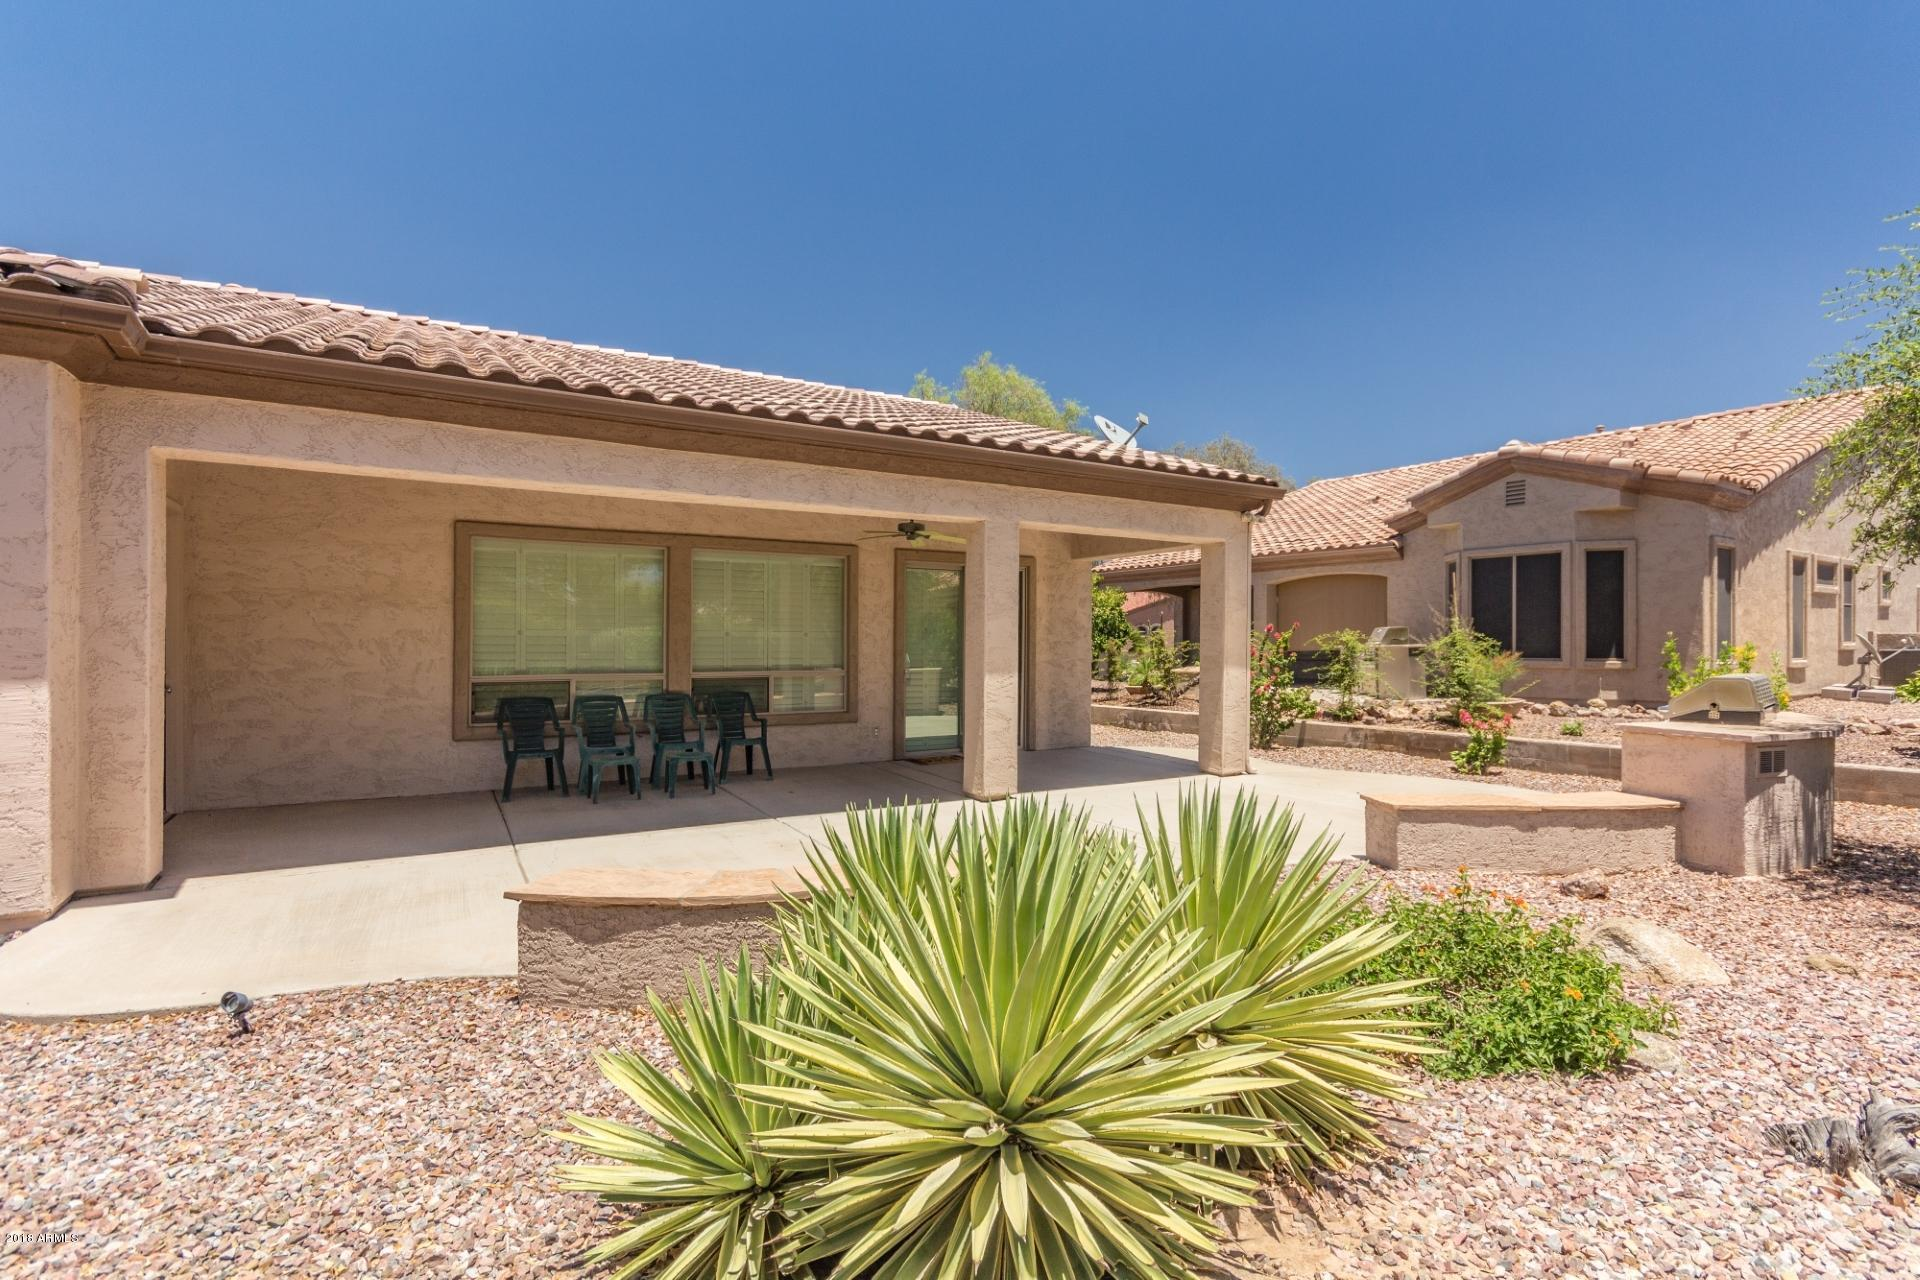 MLS 5780026 4743 E CAROB Drive, Gilbert, AZ 85298 Adult Community